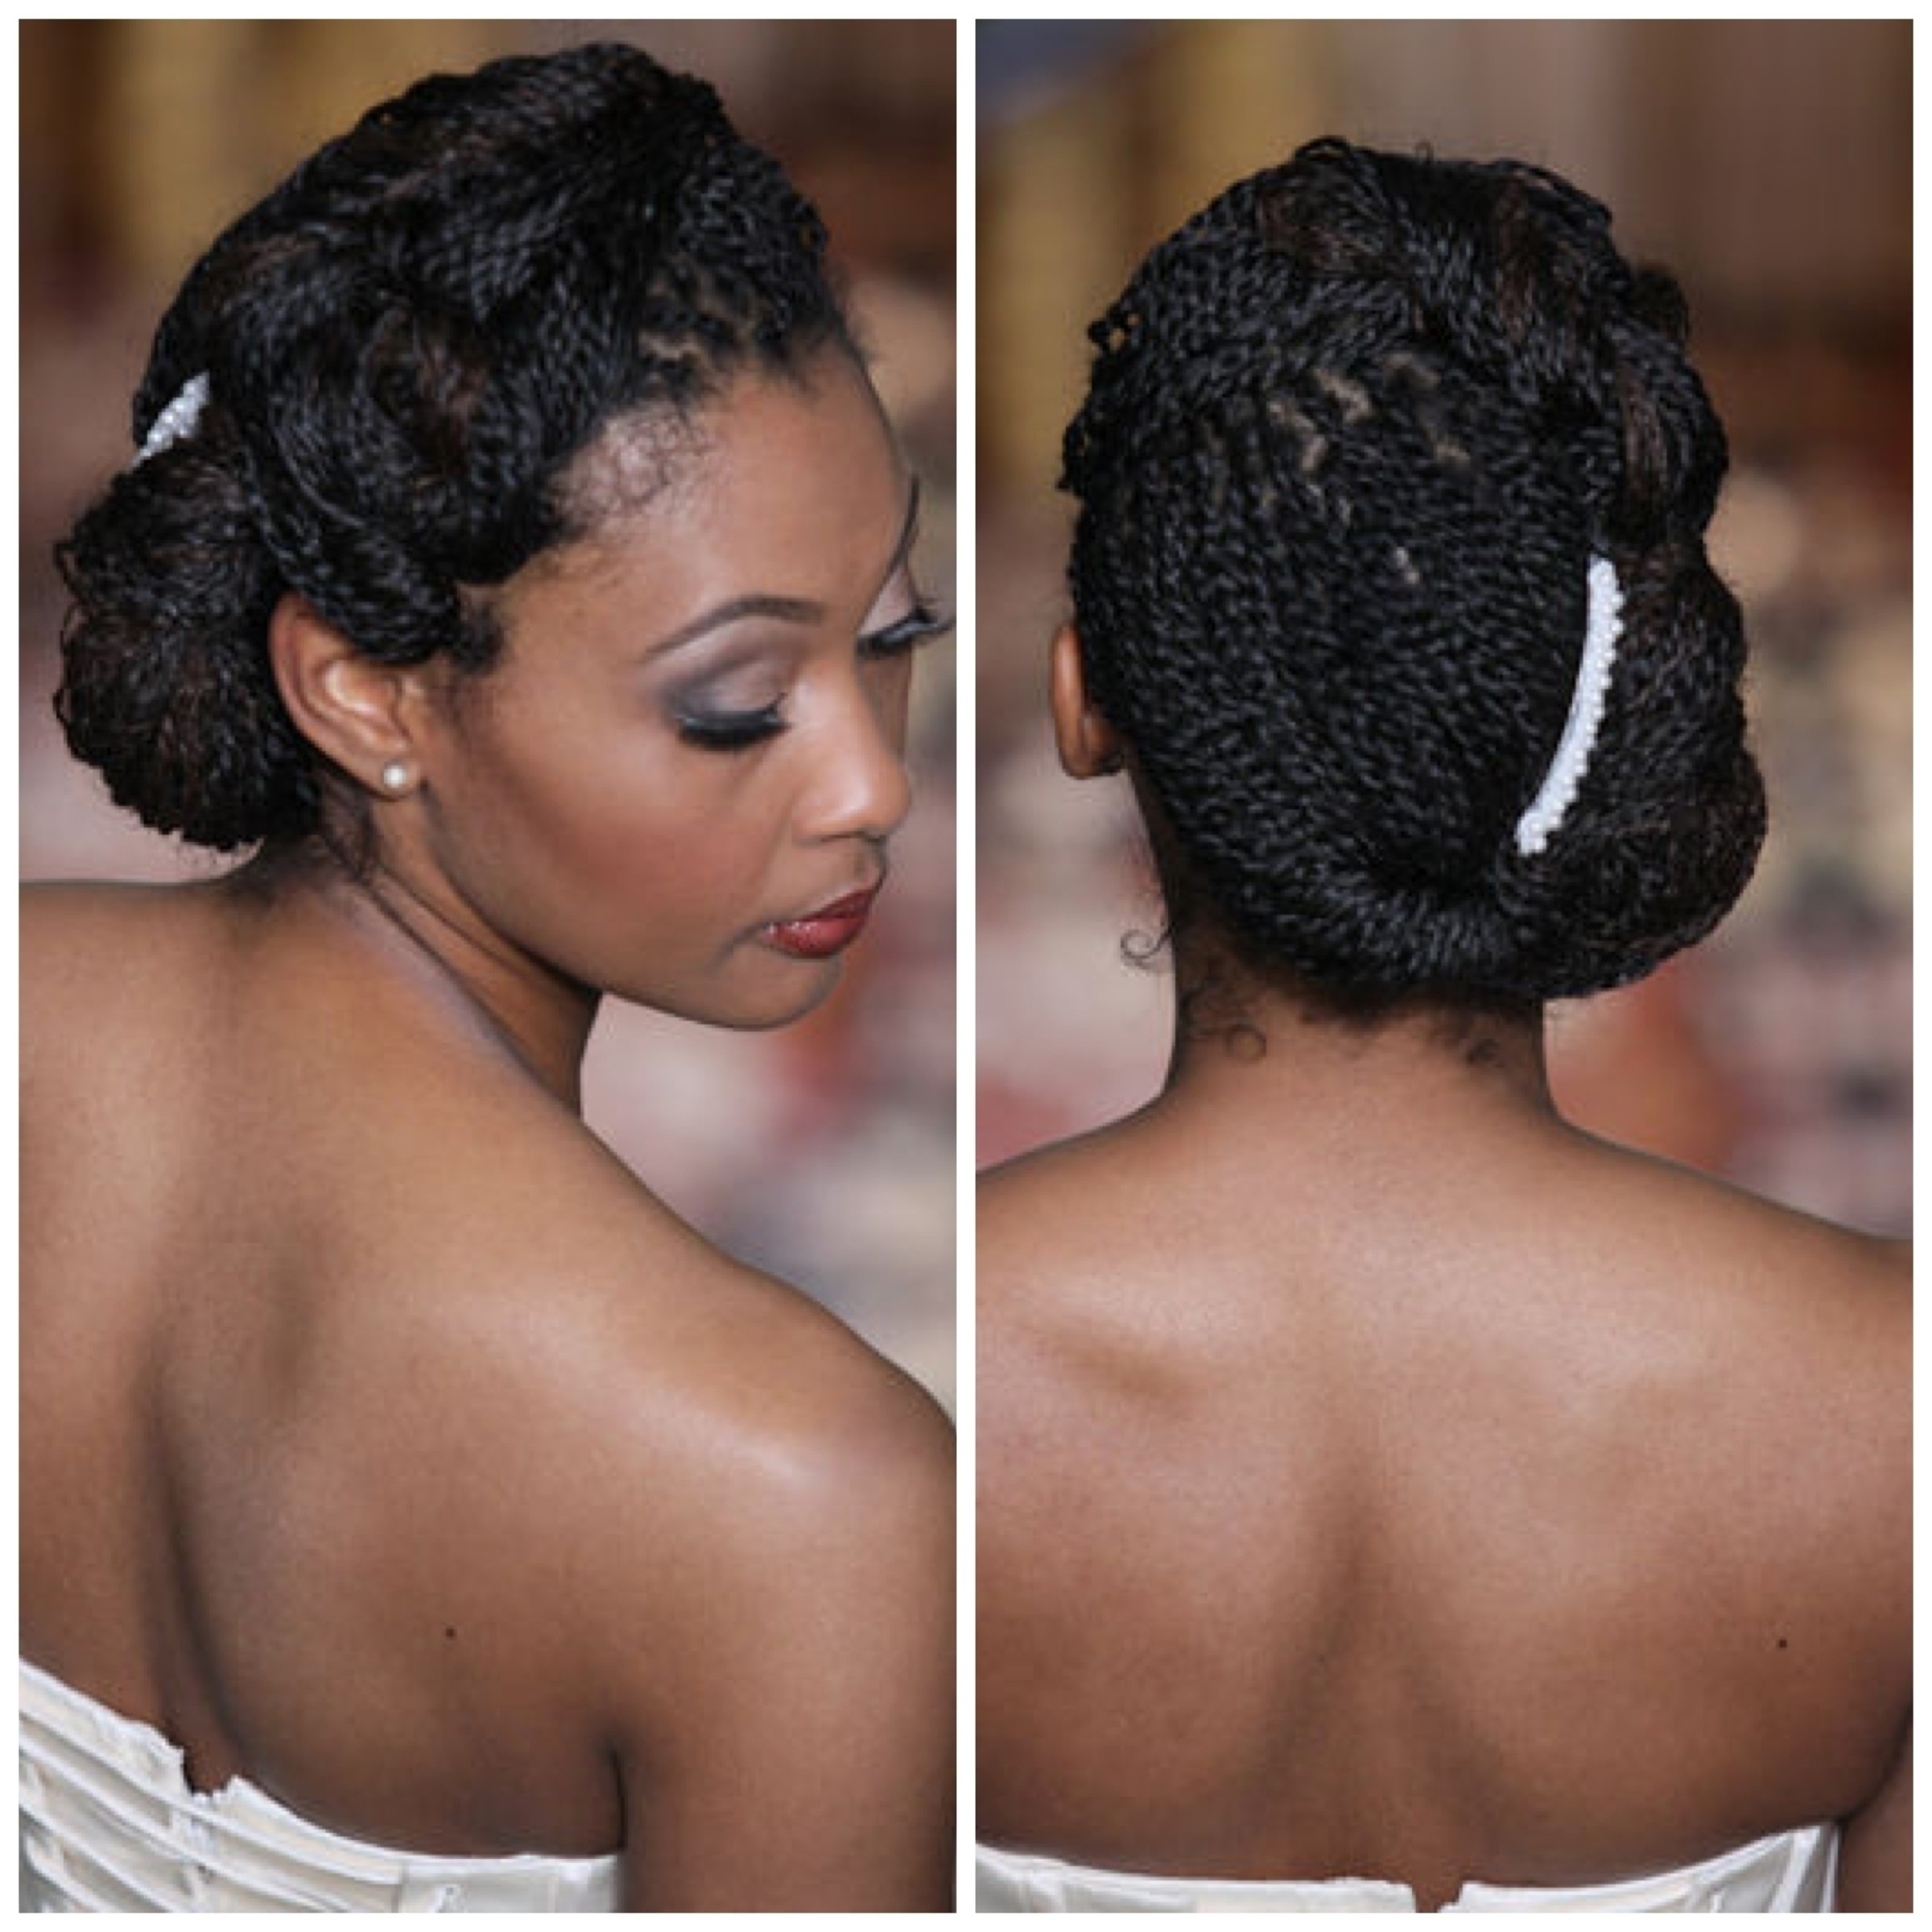 Pleasing Black Braids Updo Hairstyles Also Updo Black Braided With Braided Updo Black Hairstyles (View 10 of 15)